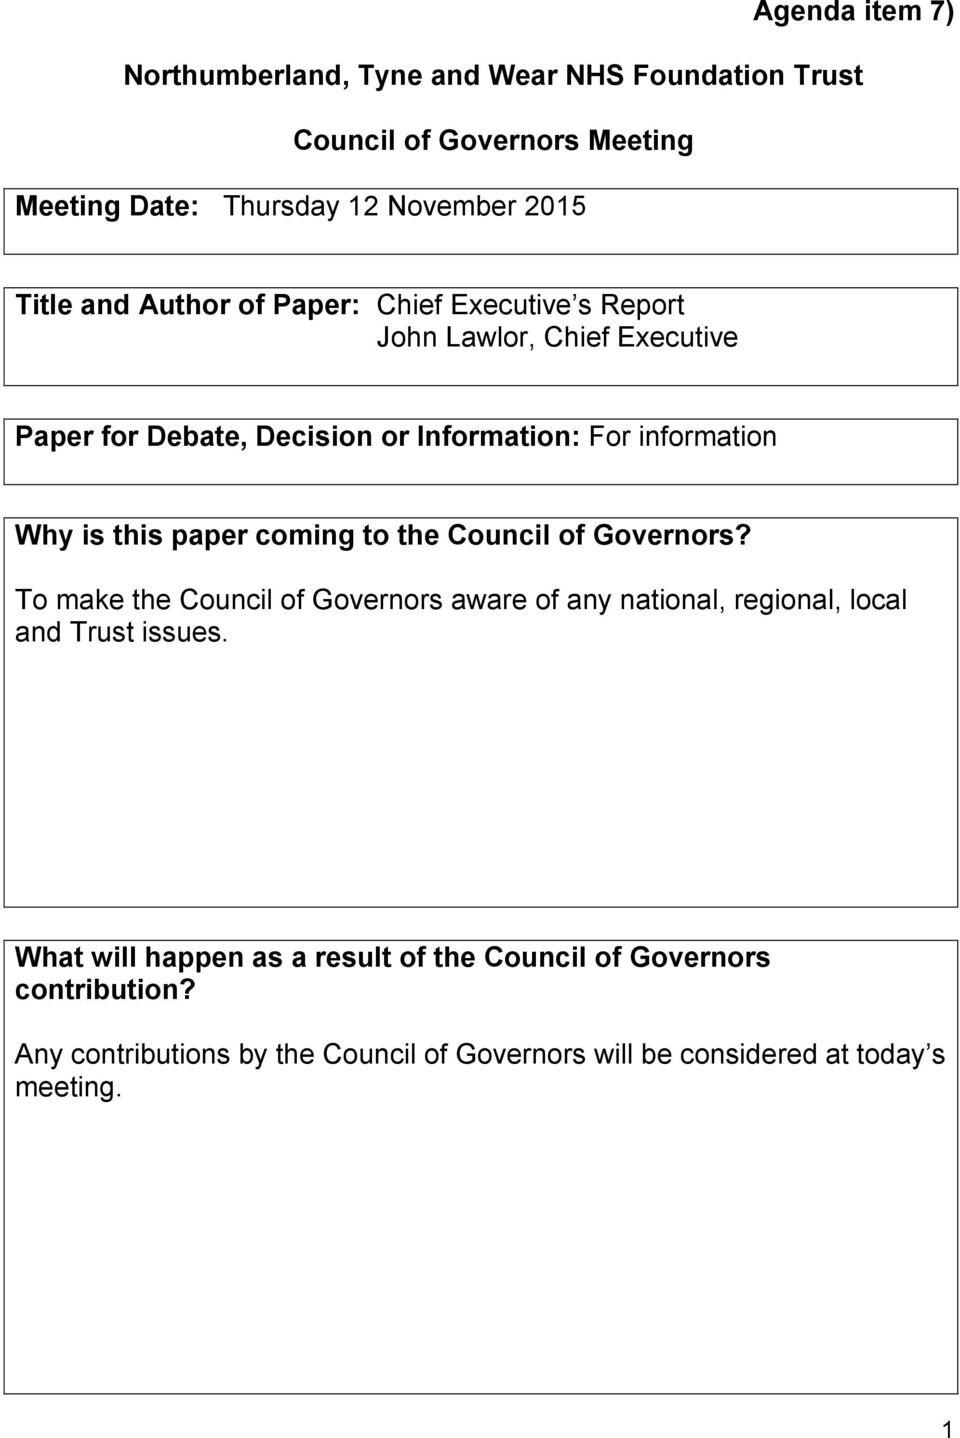 this paper coming to the Council of Governors? To make the Council of Governors aware of any national, regional, local and Trust issues.